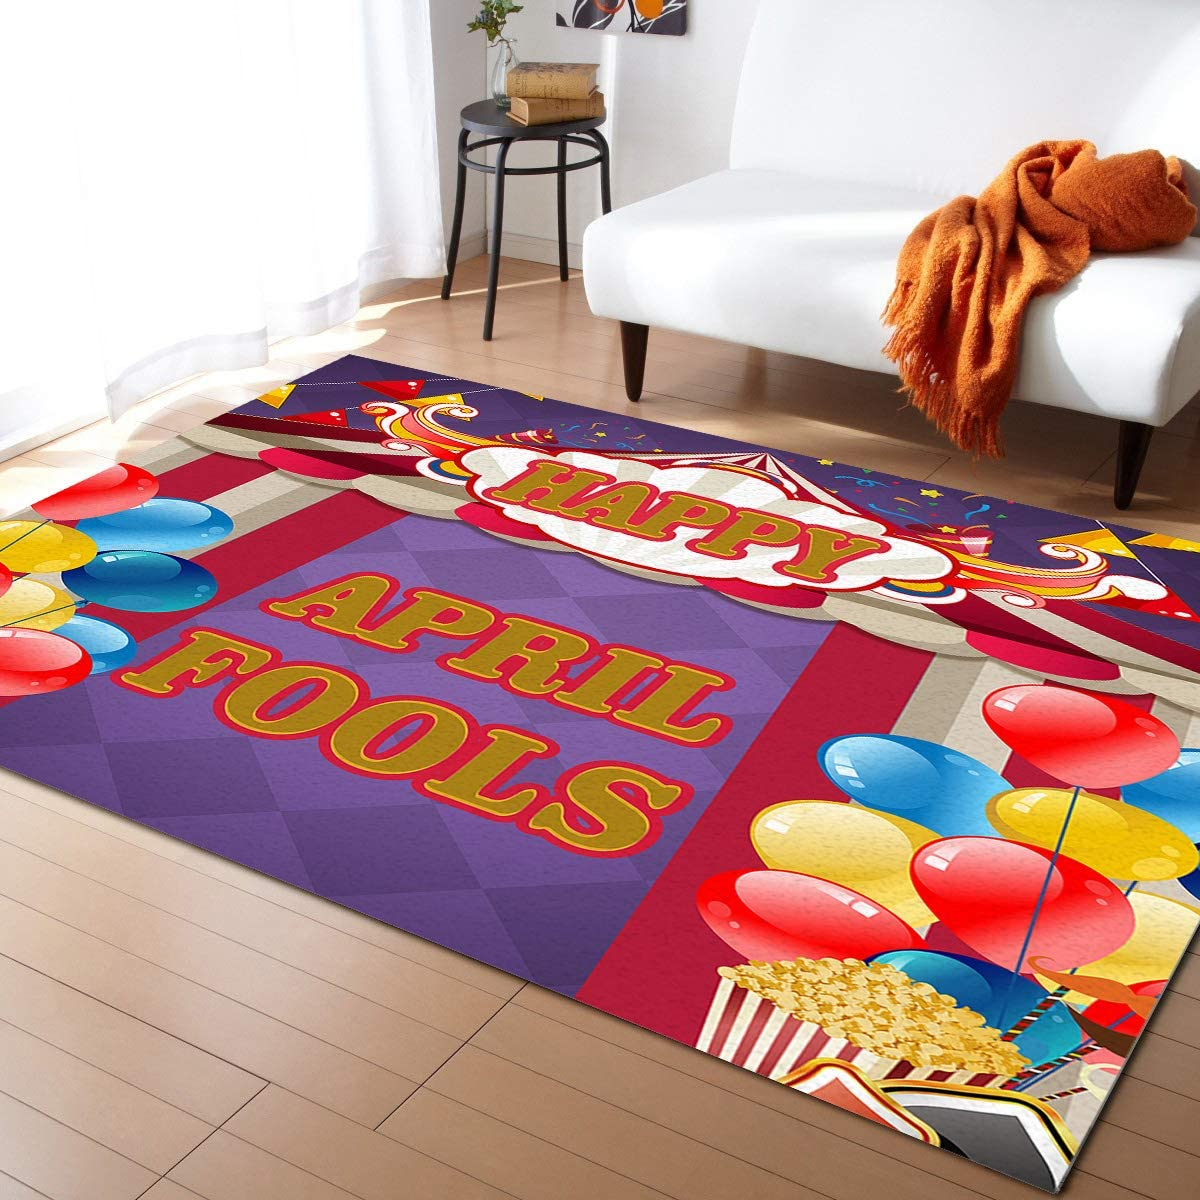 Contemporary Indoor Area Rugs, Happy April Fools' Day Tent Ballon Modern Home Decor Rug Durable Hardwood Floor Mat Carpet for Living Room/Bedroom, 5' x 8'